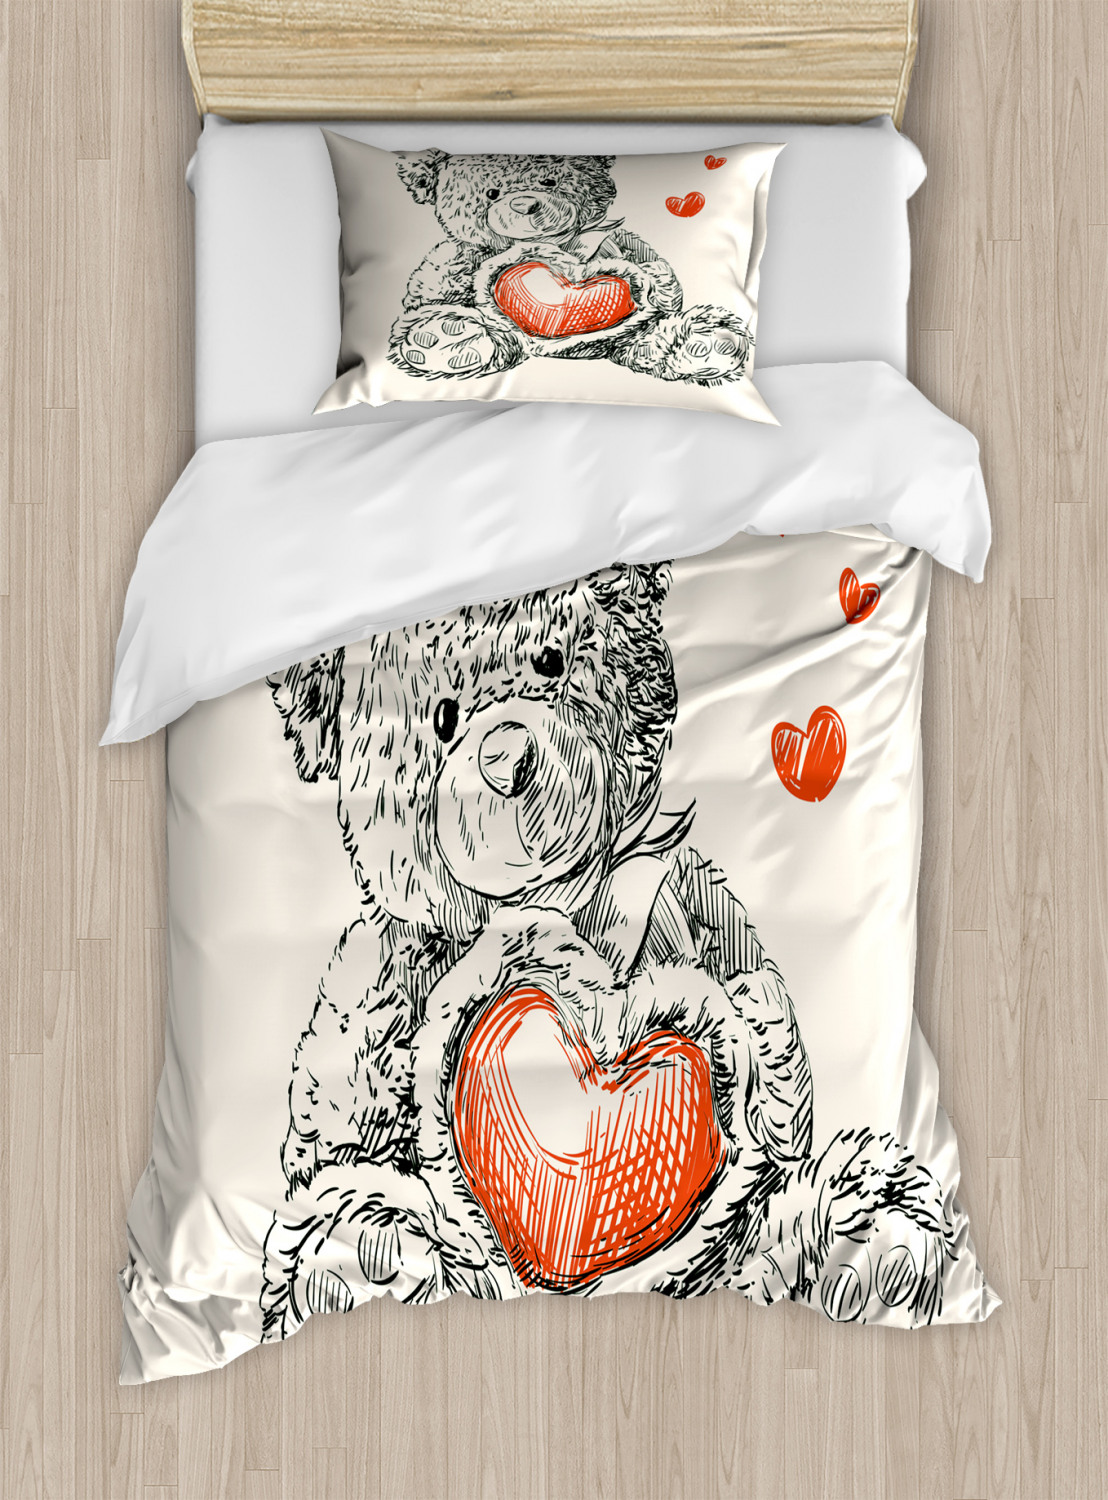 doodle duvet cover set with pillow shams detailed teddy. Black Bedroom Furniture Sets. Home Design Ideas